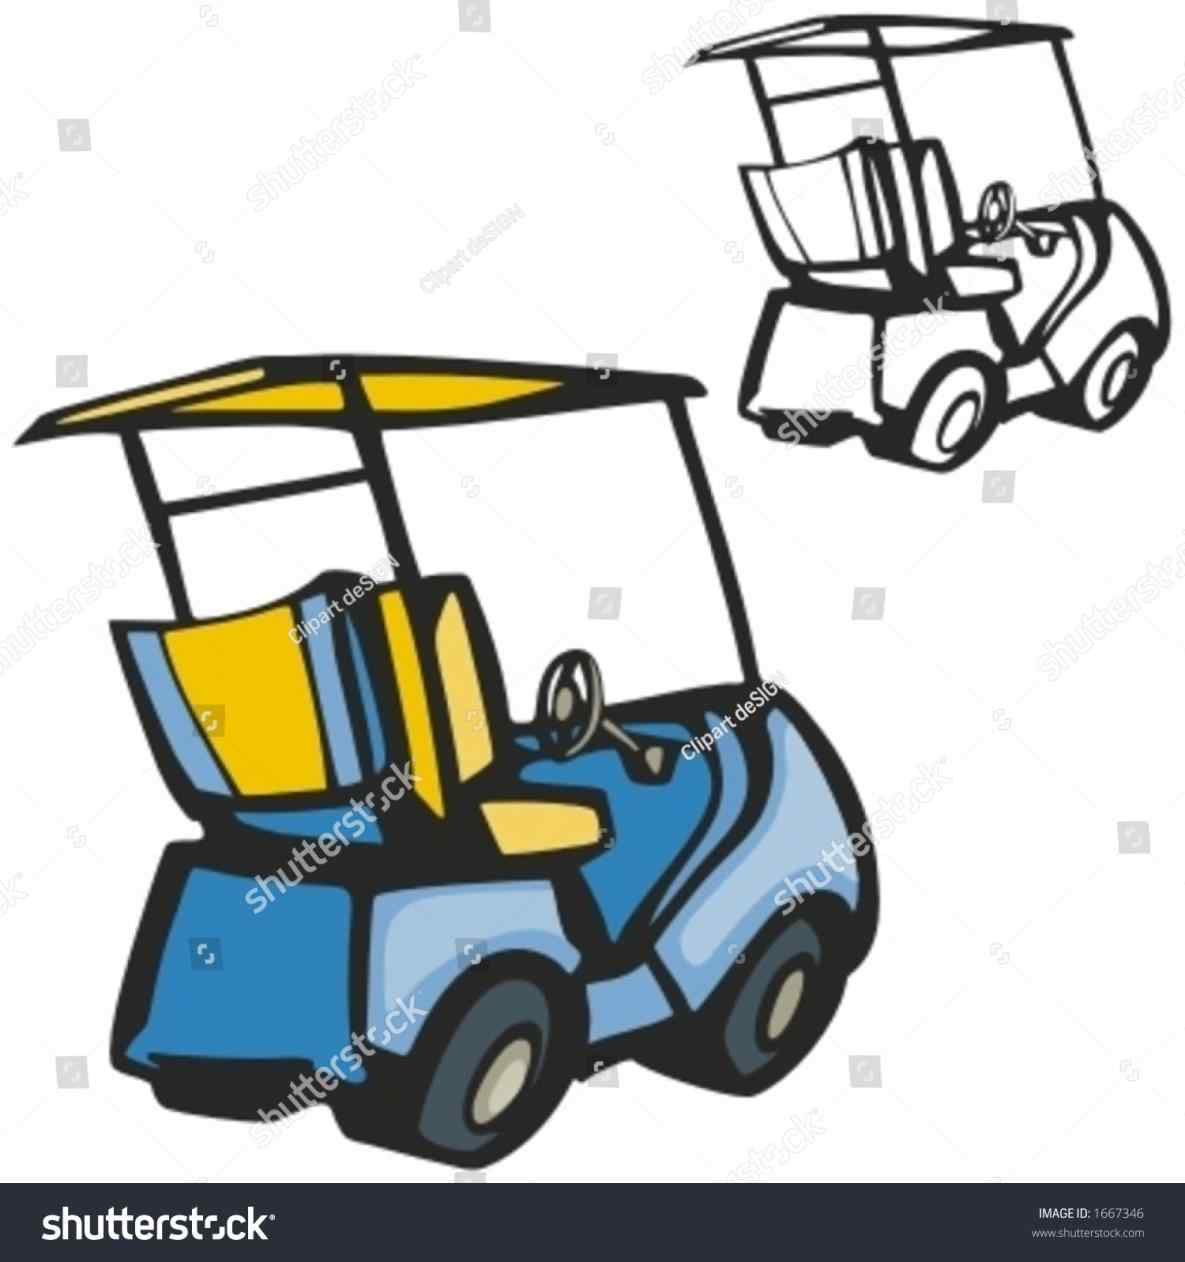 1185x1262 Cart Clip Art Low Speed Vehicle And Golf Cart Policy Improves